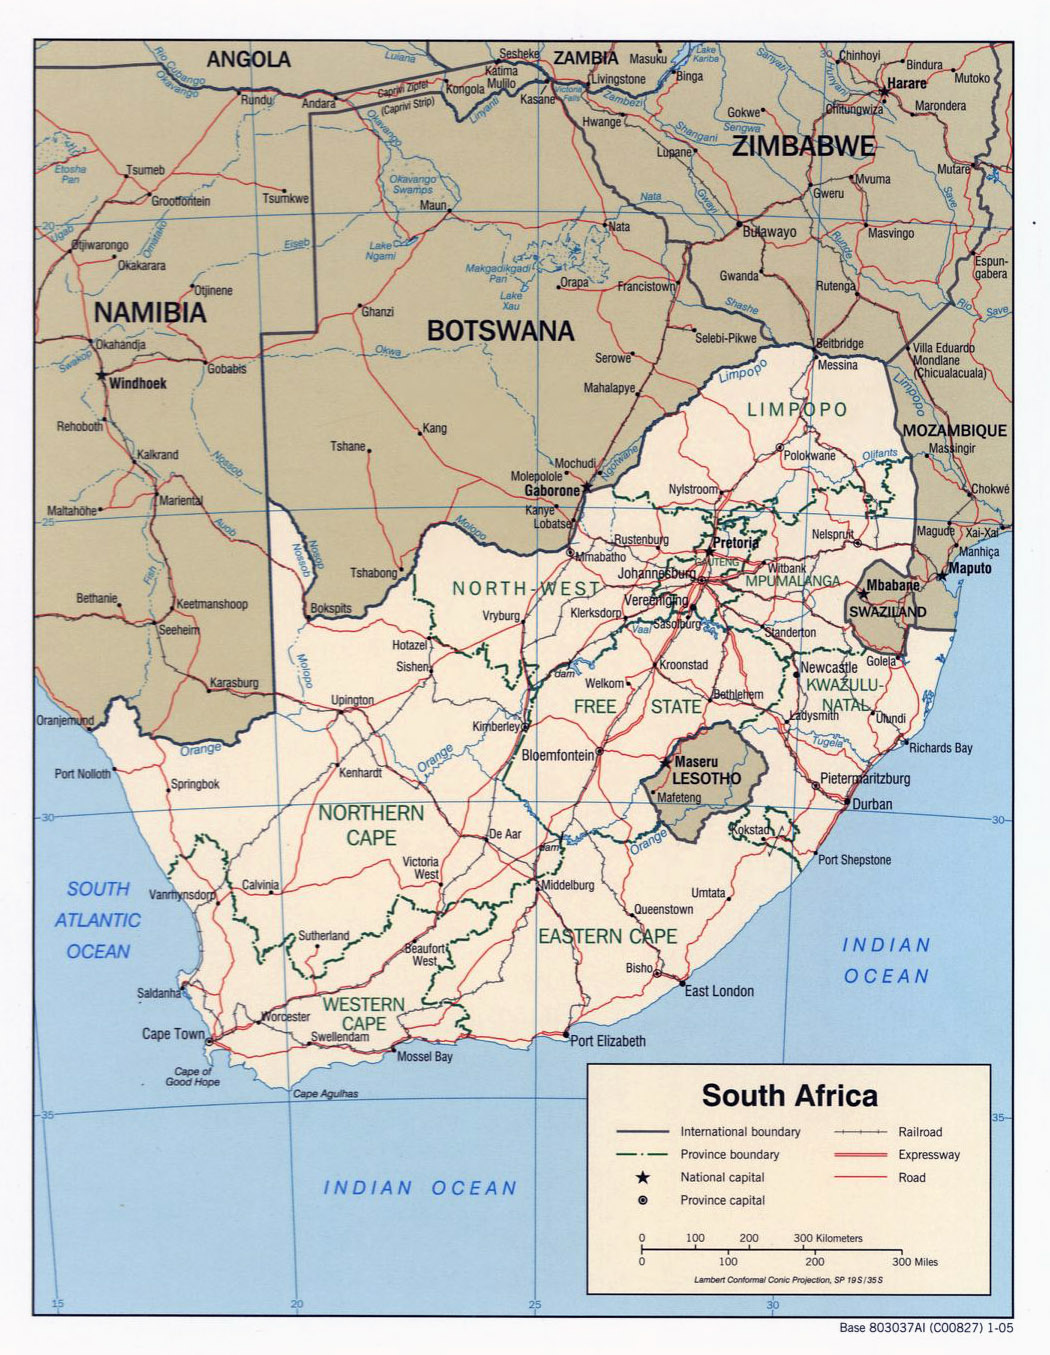 Detailed political map of South Africa with roads and major cities 2005 V